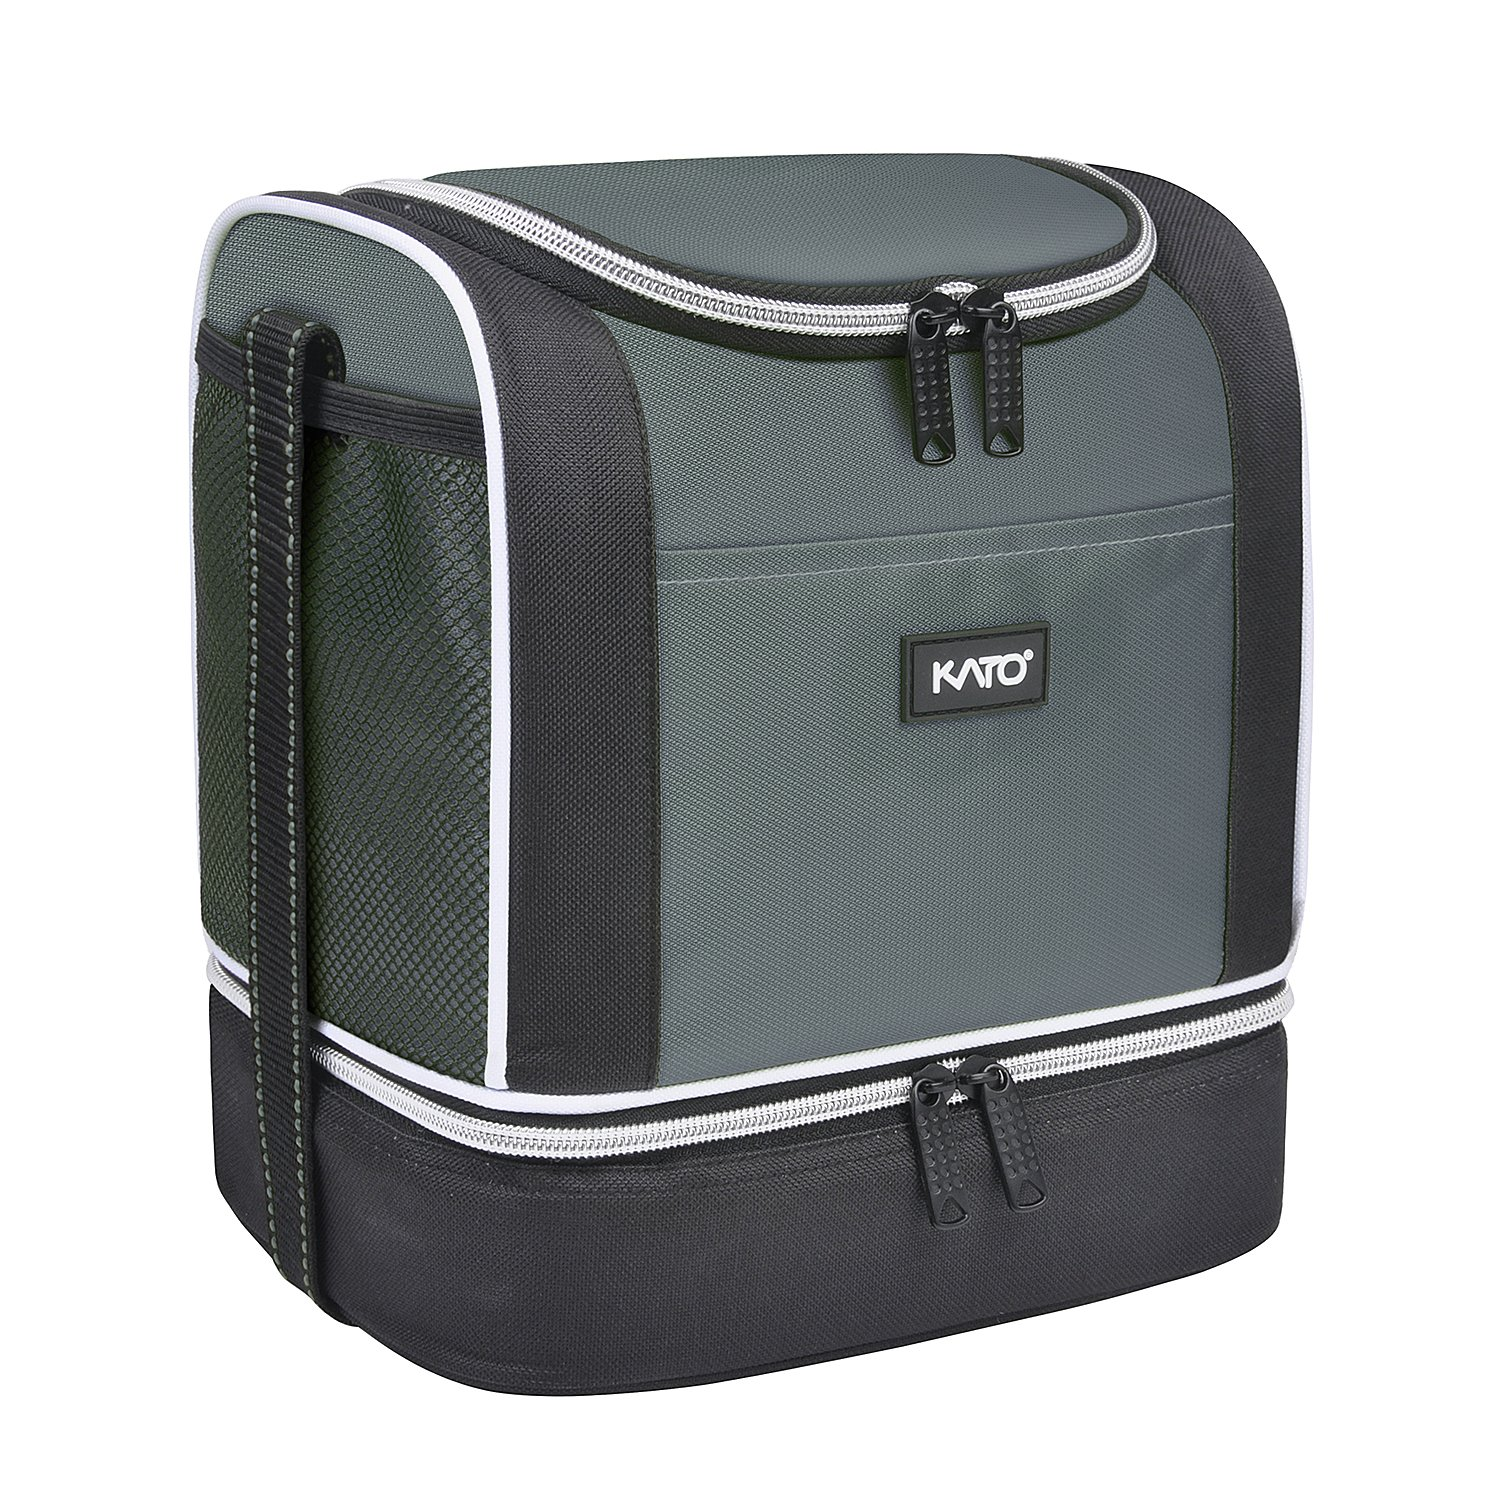 Kato Insulated Lunch Bag, Dual Compartment Portable Bento Cooler Totes for Men and Women, Gray